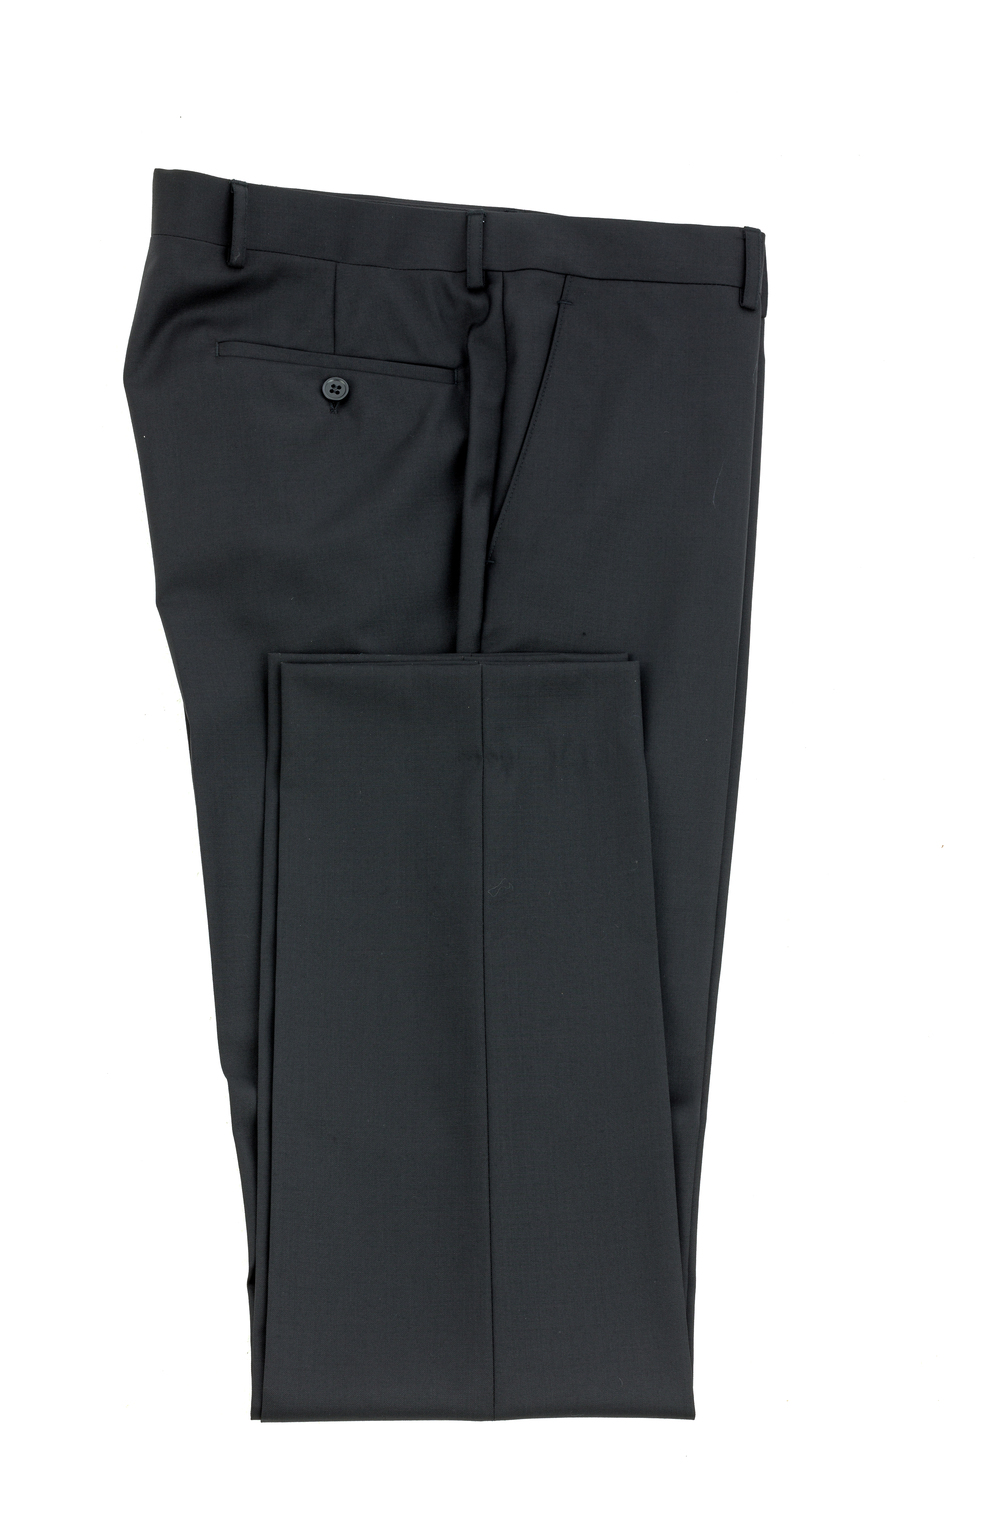 New England Jet Black Trouser